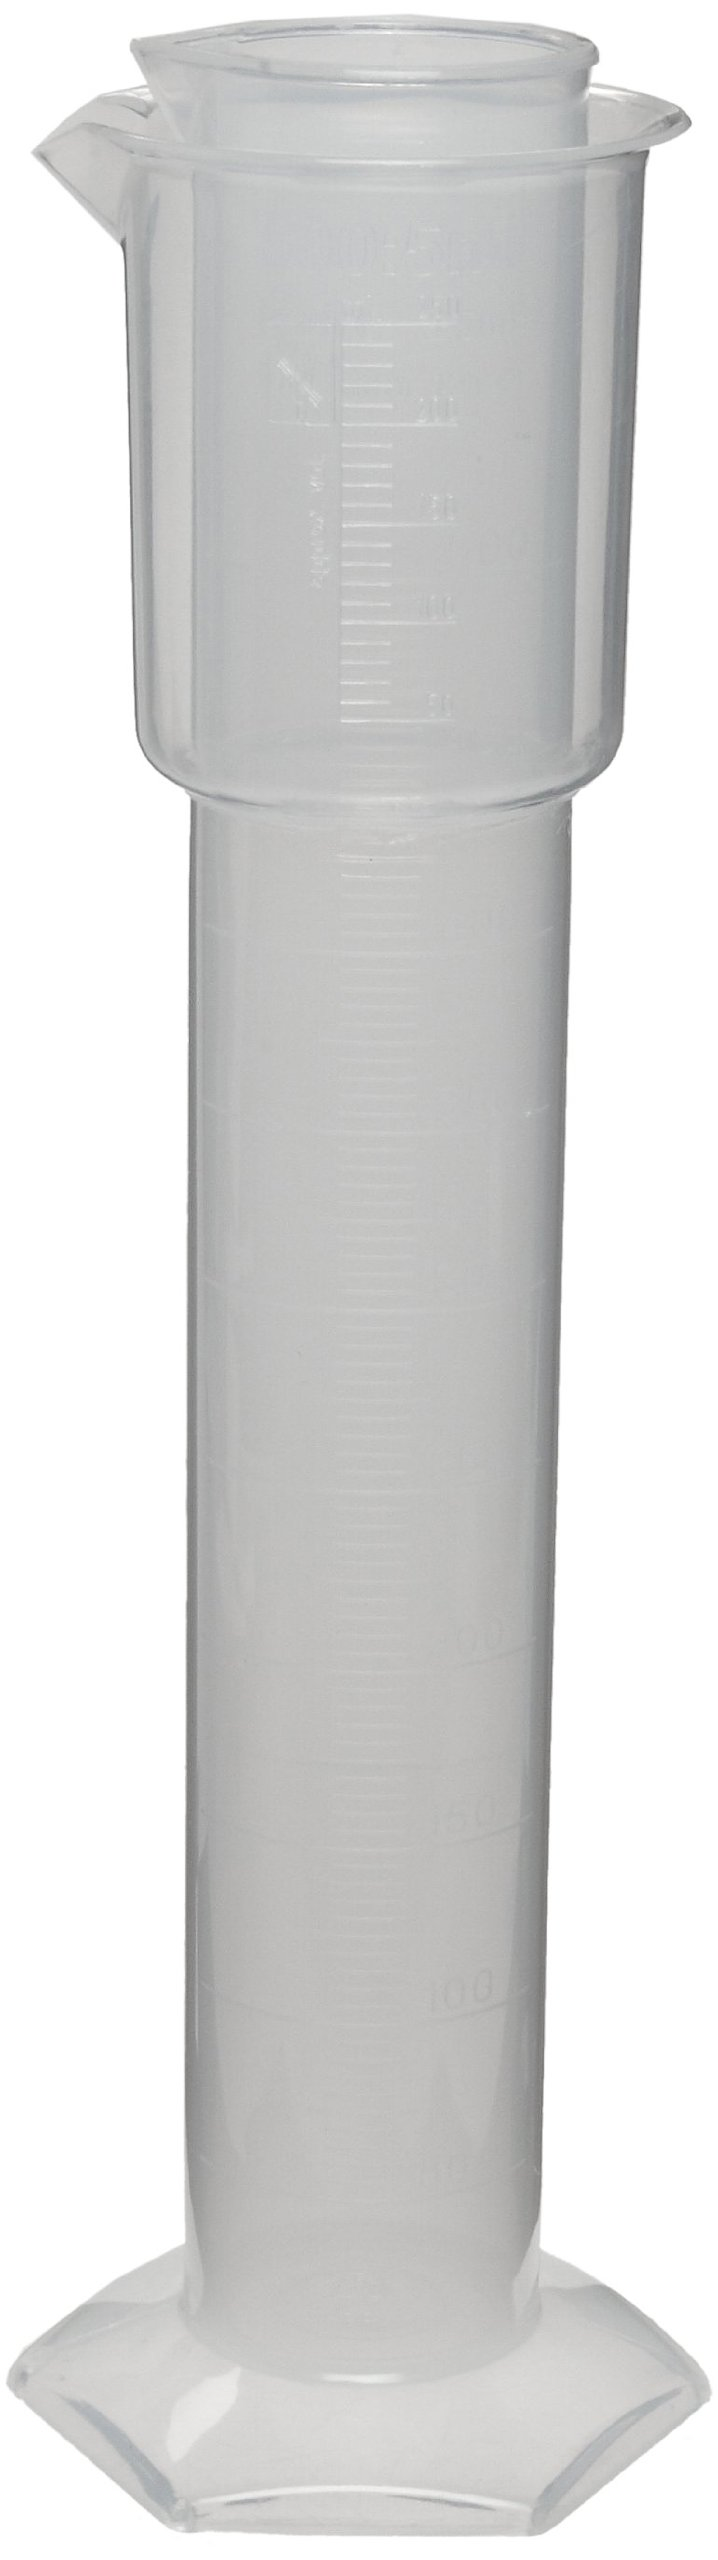 Dynalon 141805 Translucent Polypropylene 500mL Hydrometer Jar